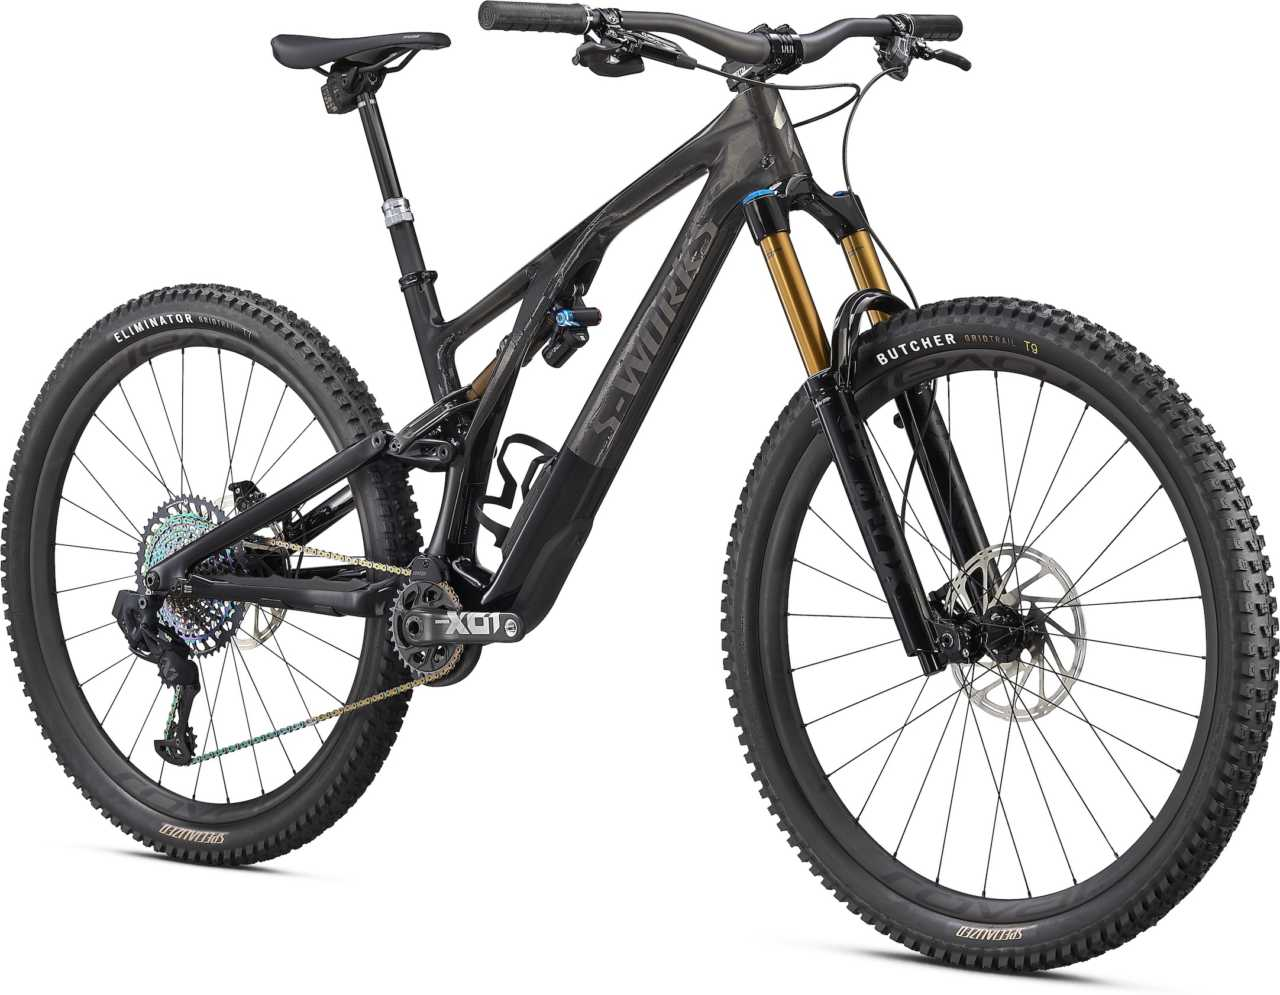 The new 2021 Specialized Stumpjumper carbon fiber trail mountain bike with 130mm suspension travel, SWAT downtube storage and Fox Digressive shock.